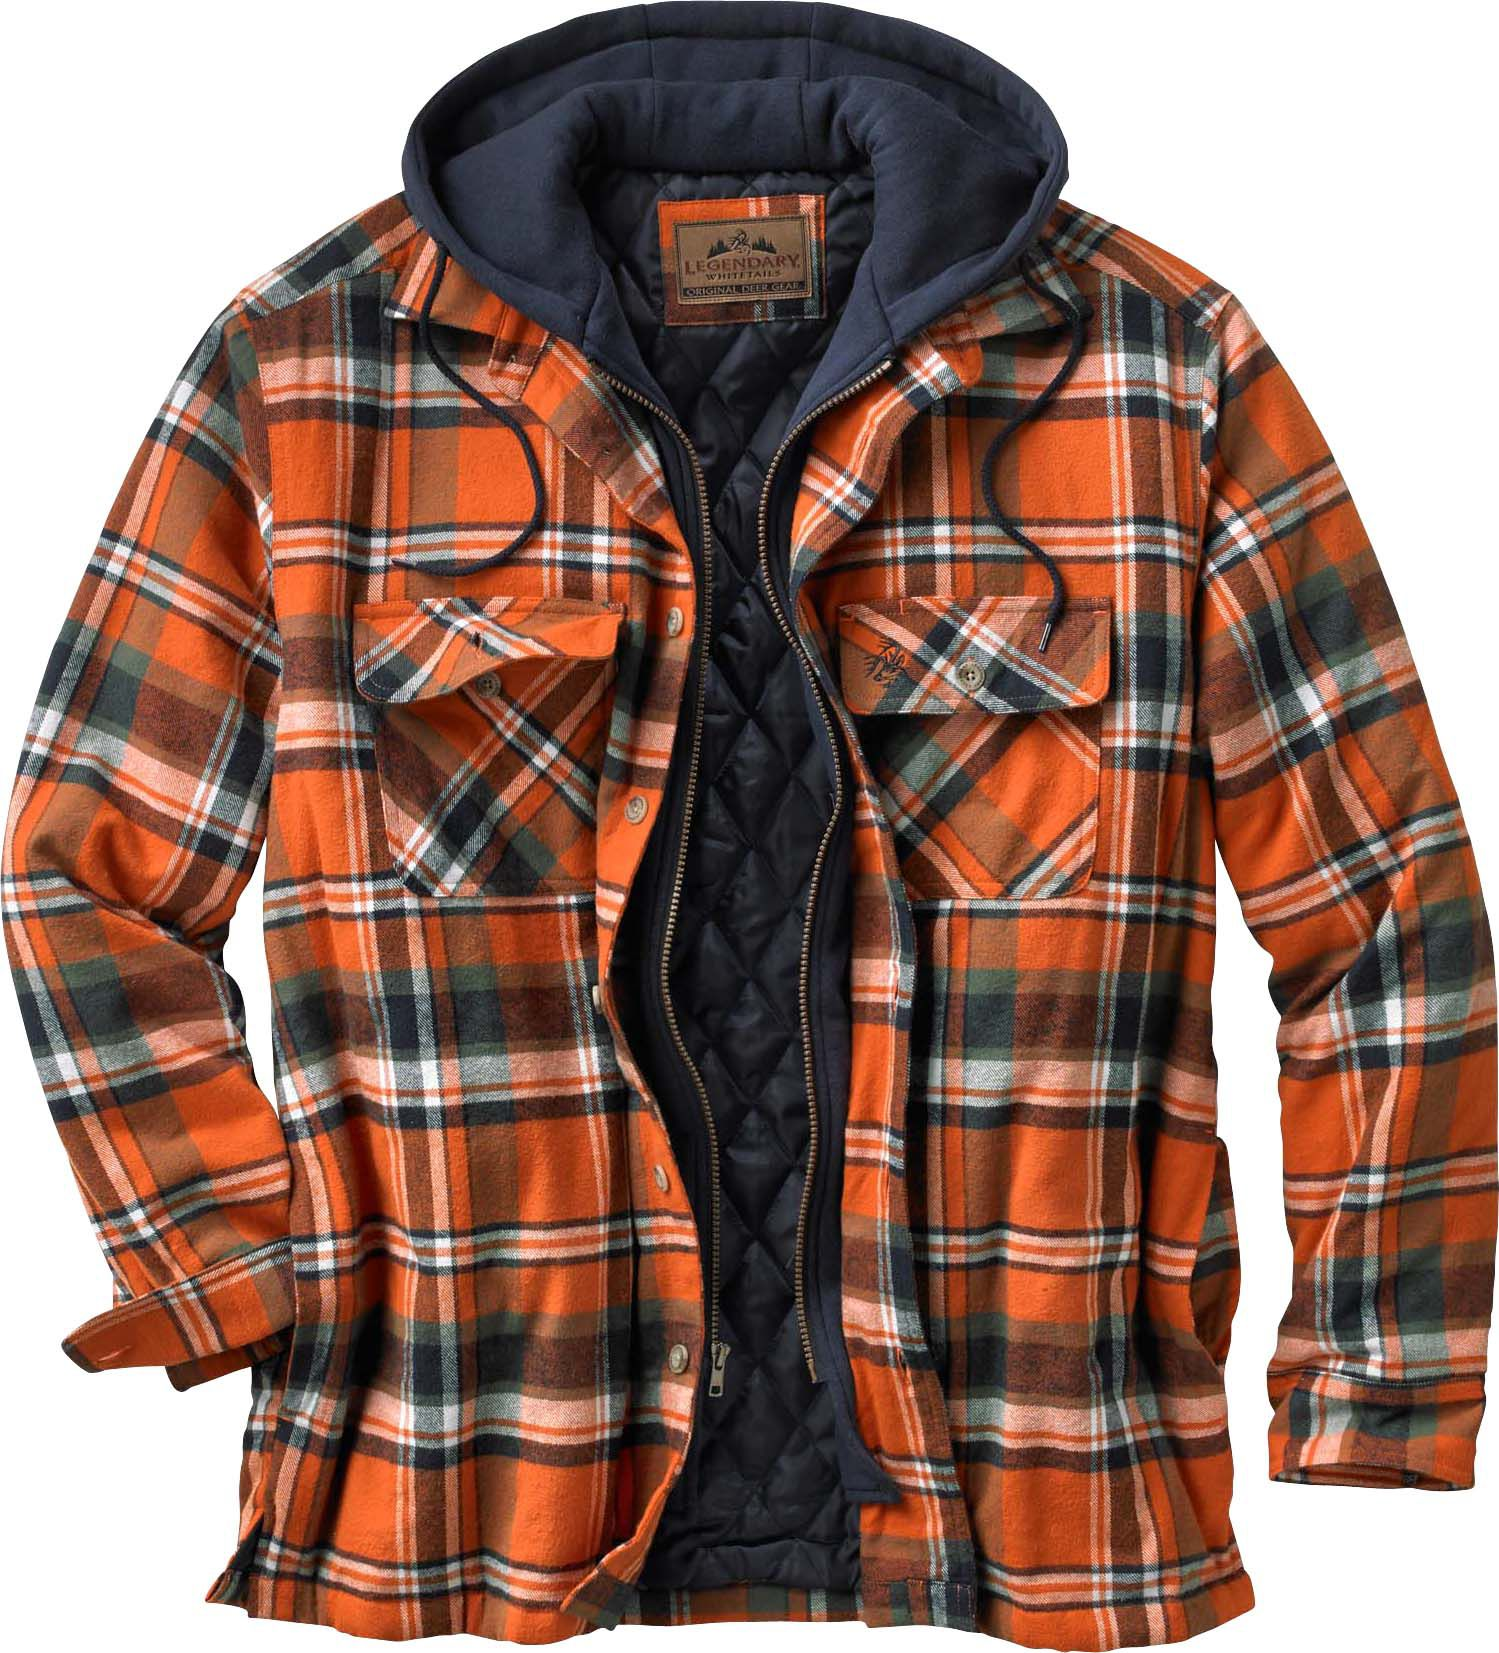 Maplewood Hooded Shirt Jacket | Legendary Whitetails : quilted flannel jacket with hood - Adamdwight.com